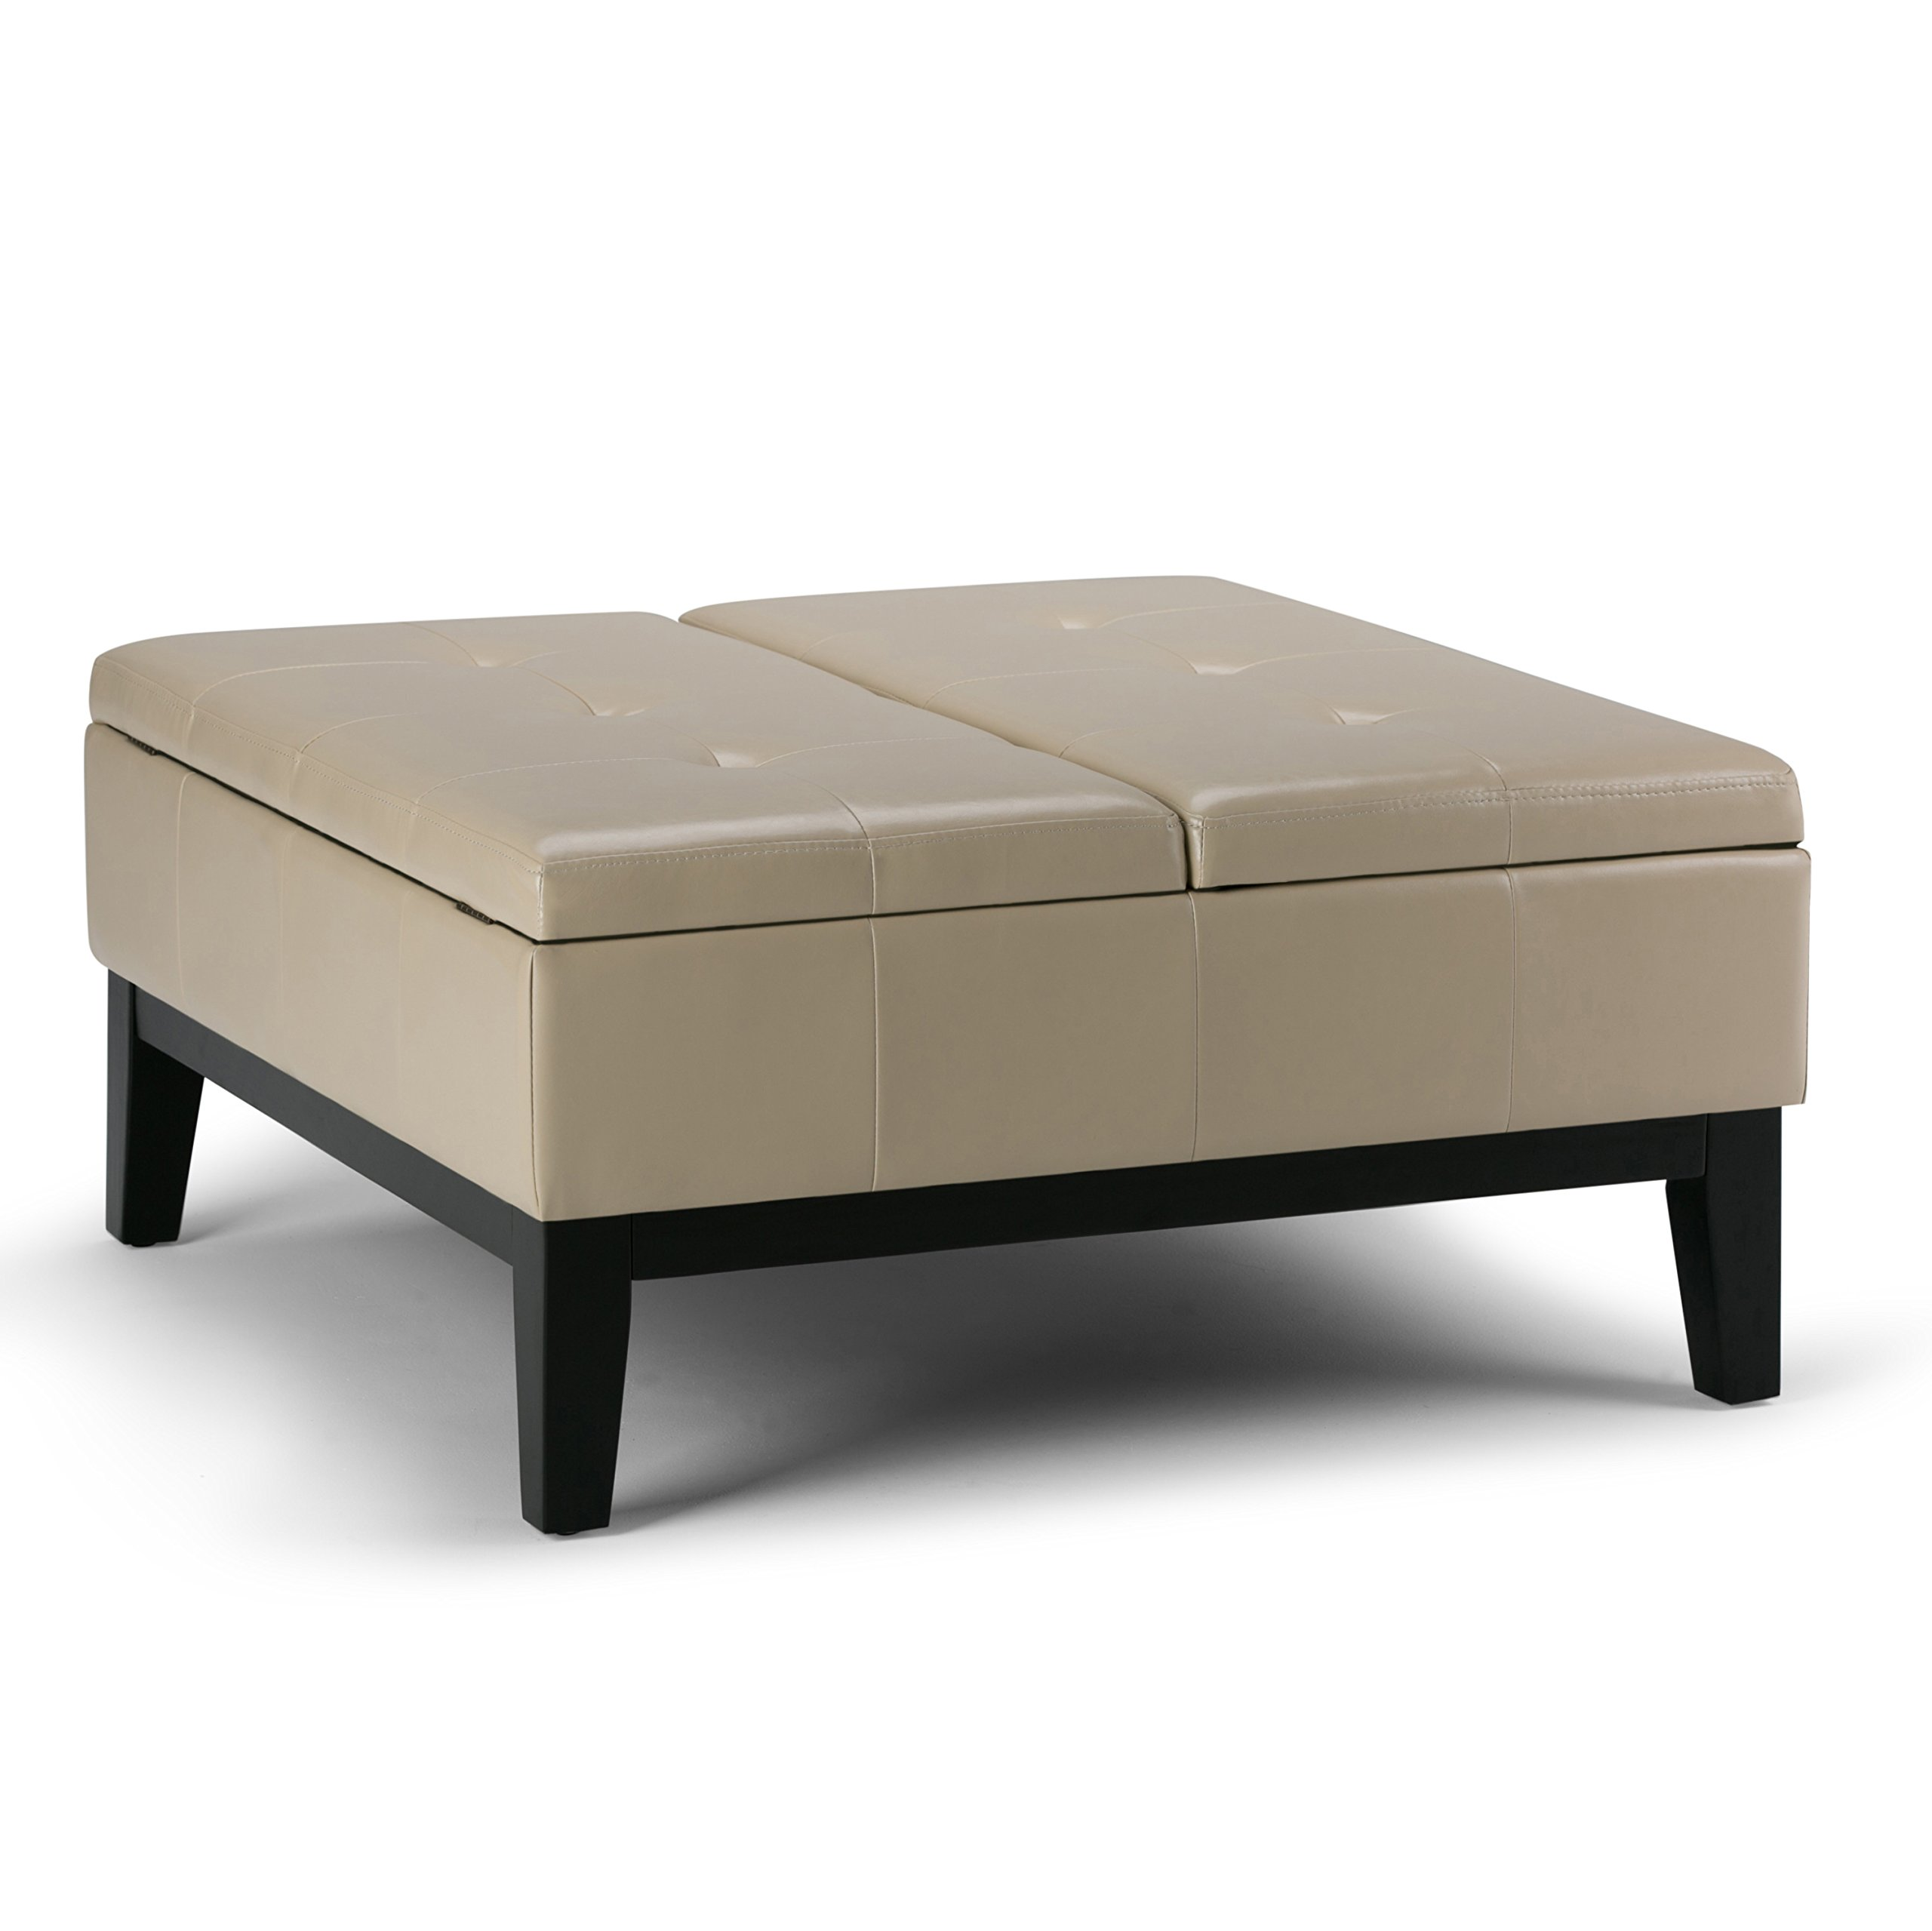 Simpli Home Dover Square Coffee Table Ottoman with Split Lift Up Lid, Satin Cream